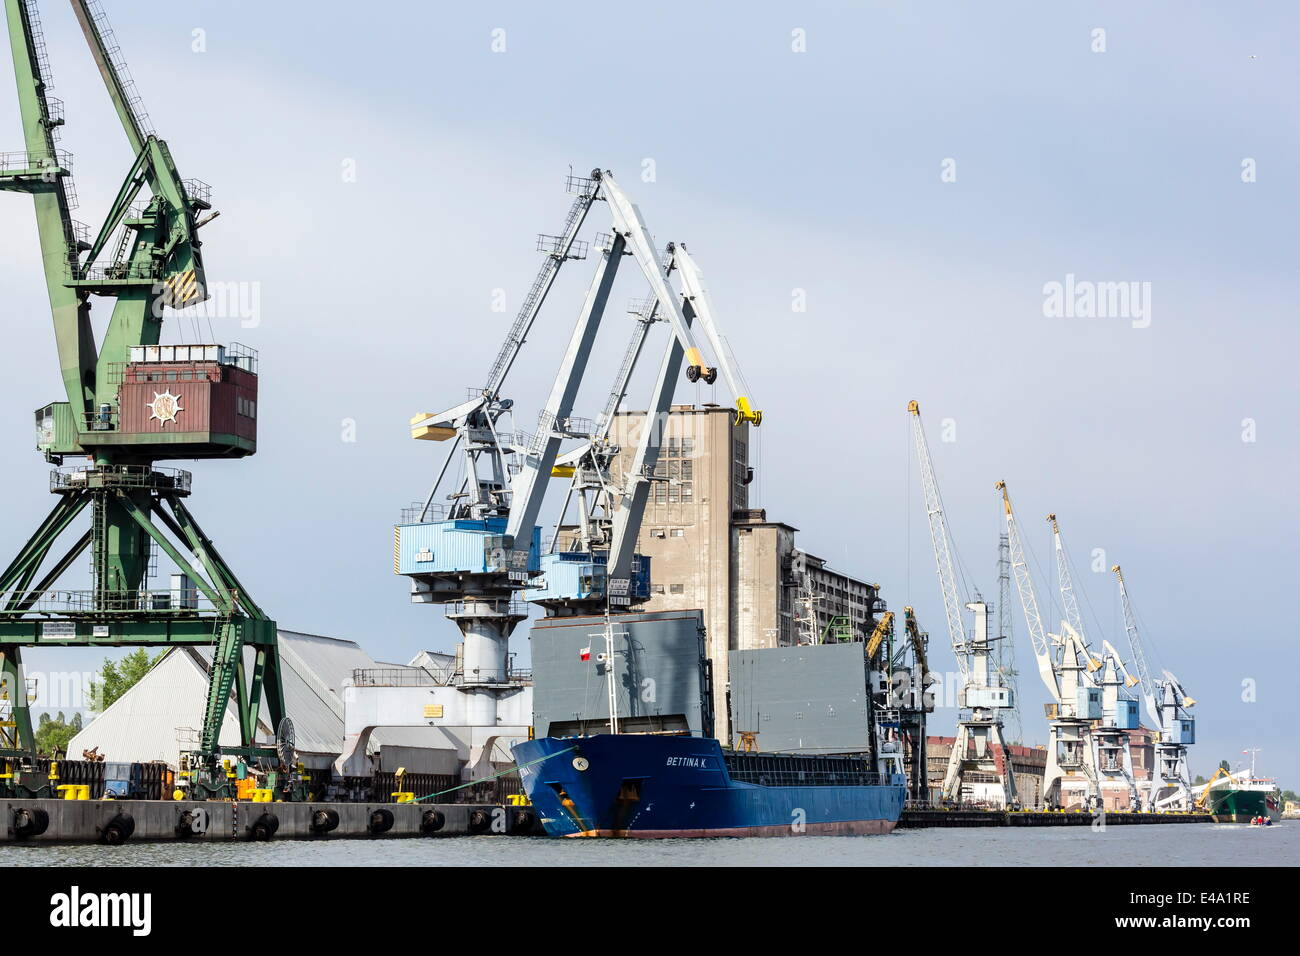 The once communist controlled Gdansk shipyards, home to the Solidarity movement, Gdansk, Poland, Europe - Stock Image